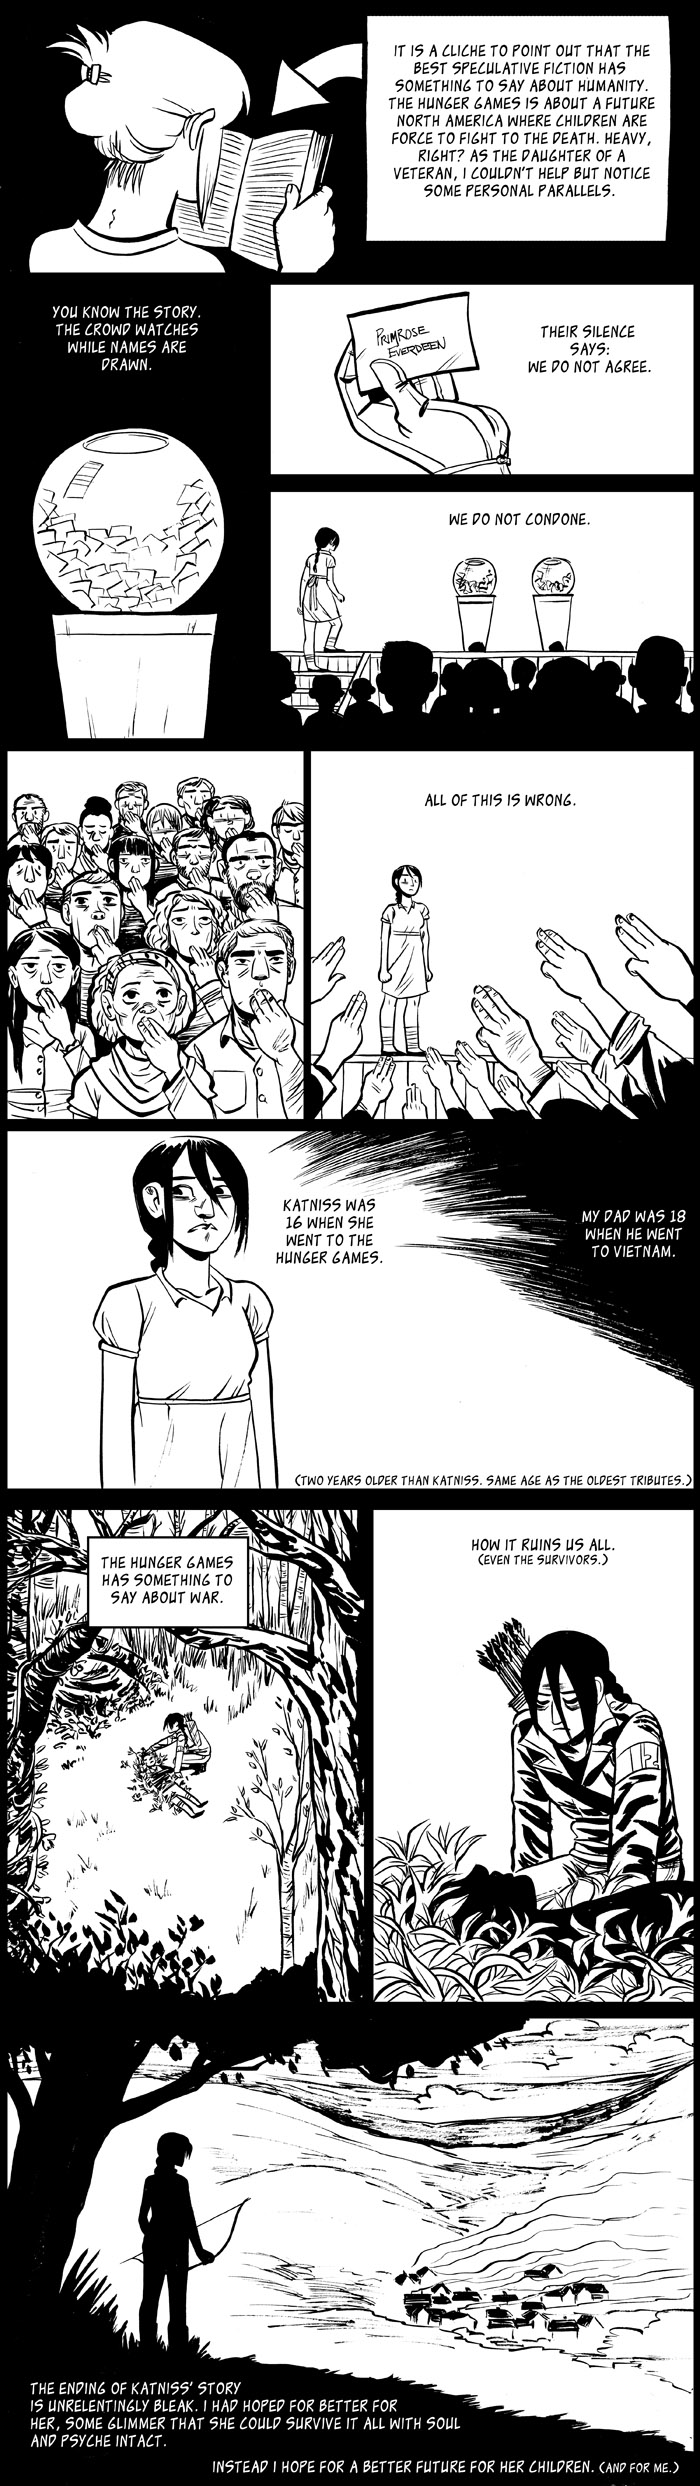 The Hunger Games comic by Faith Erin Hicks